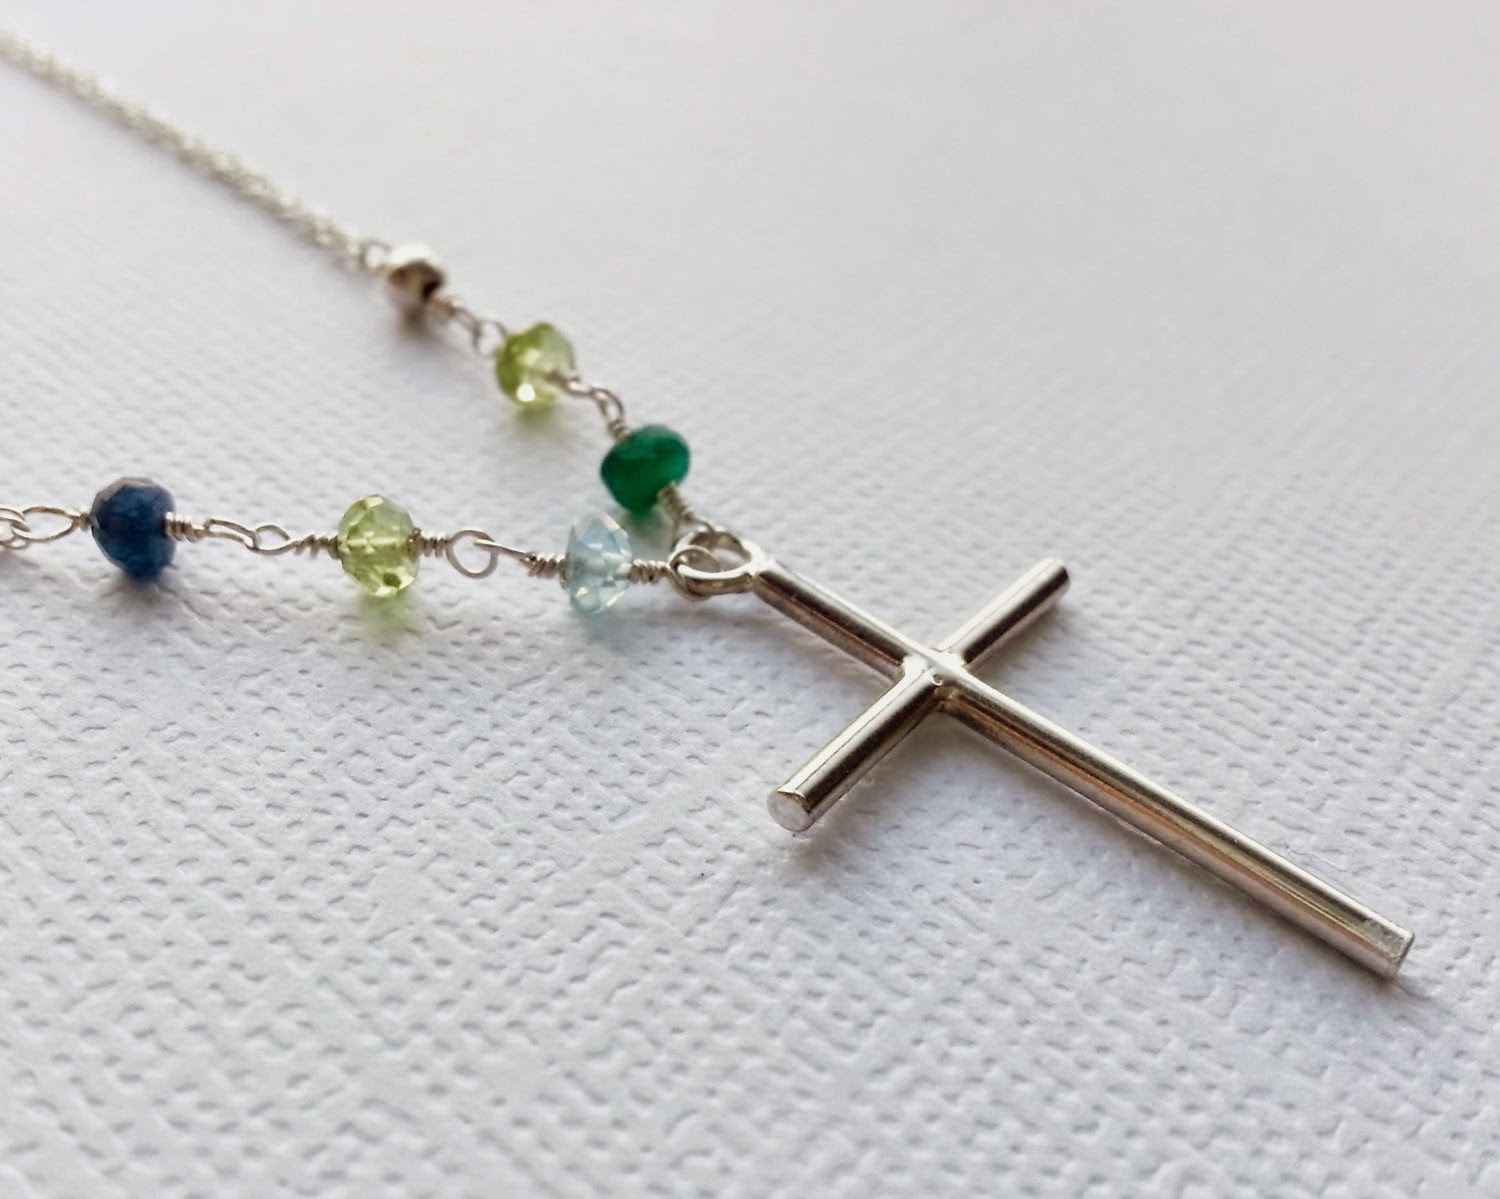 https://www.etsy.com/listing/111889950/cross-necklace-birthstone-necklace